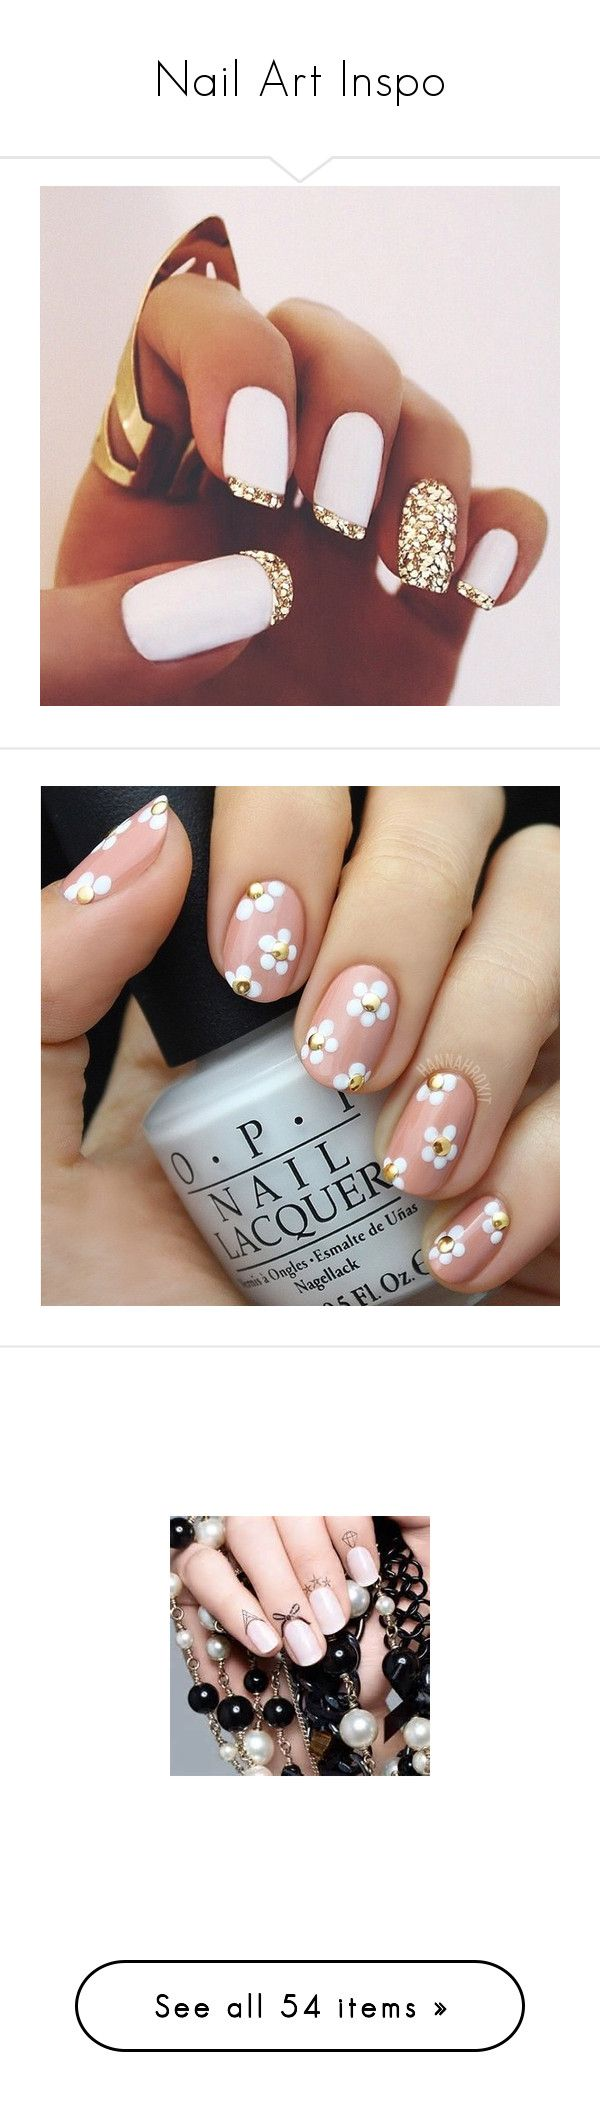 """Nail Art Inspo"" by daizydarling ❤ liked on Polyvore featuring nails, makeup, beauty, nail art, unhas, nail polish, lullabies, kylie jenner, accessories and pics"